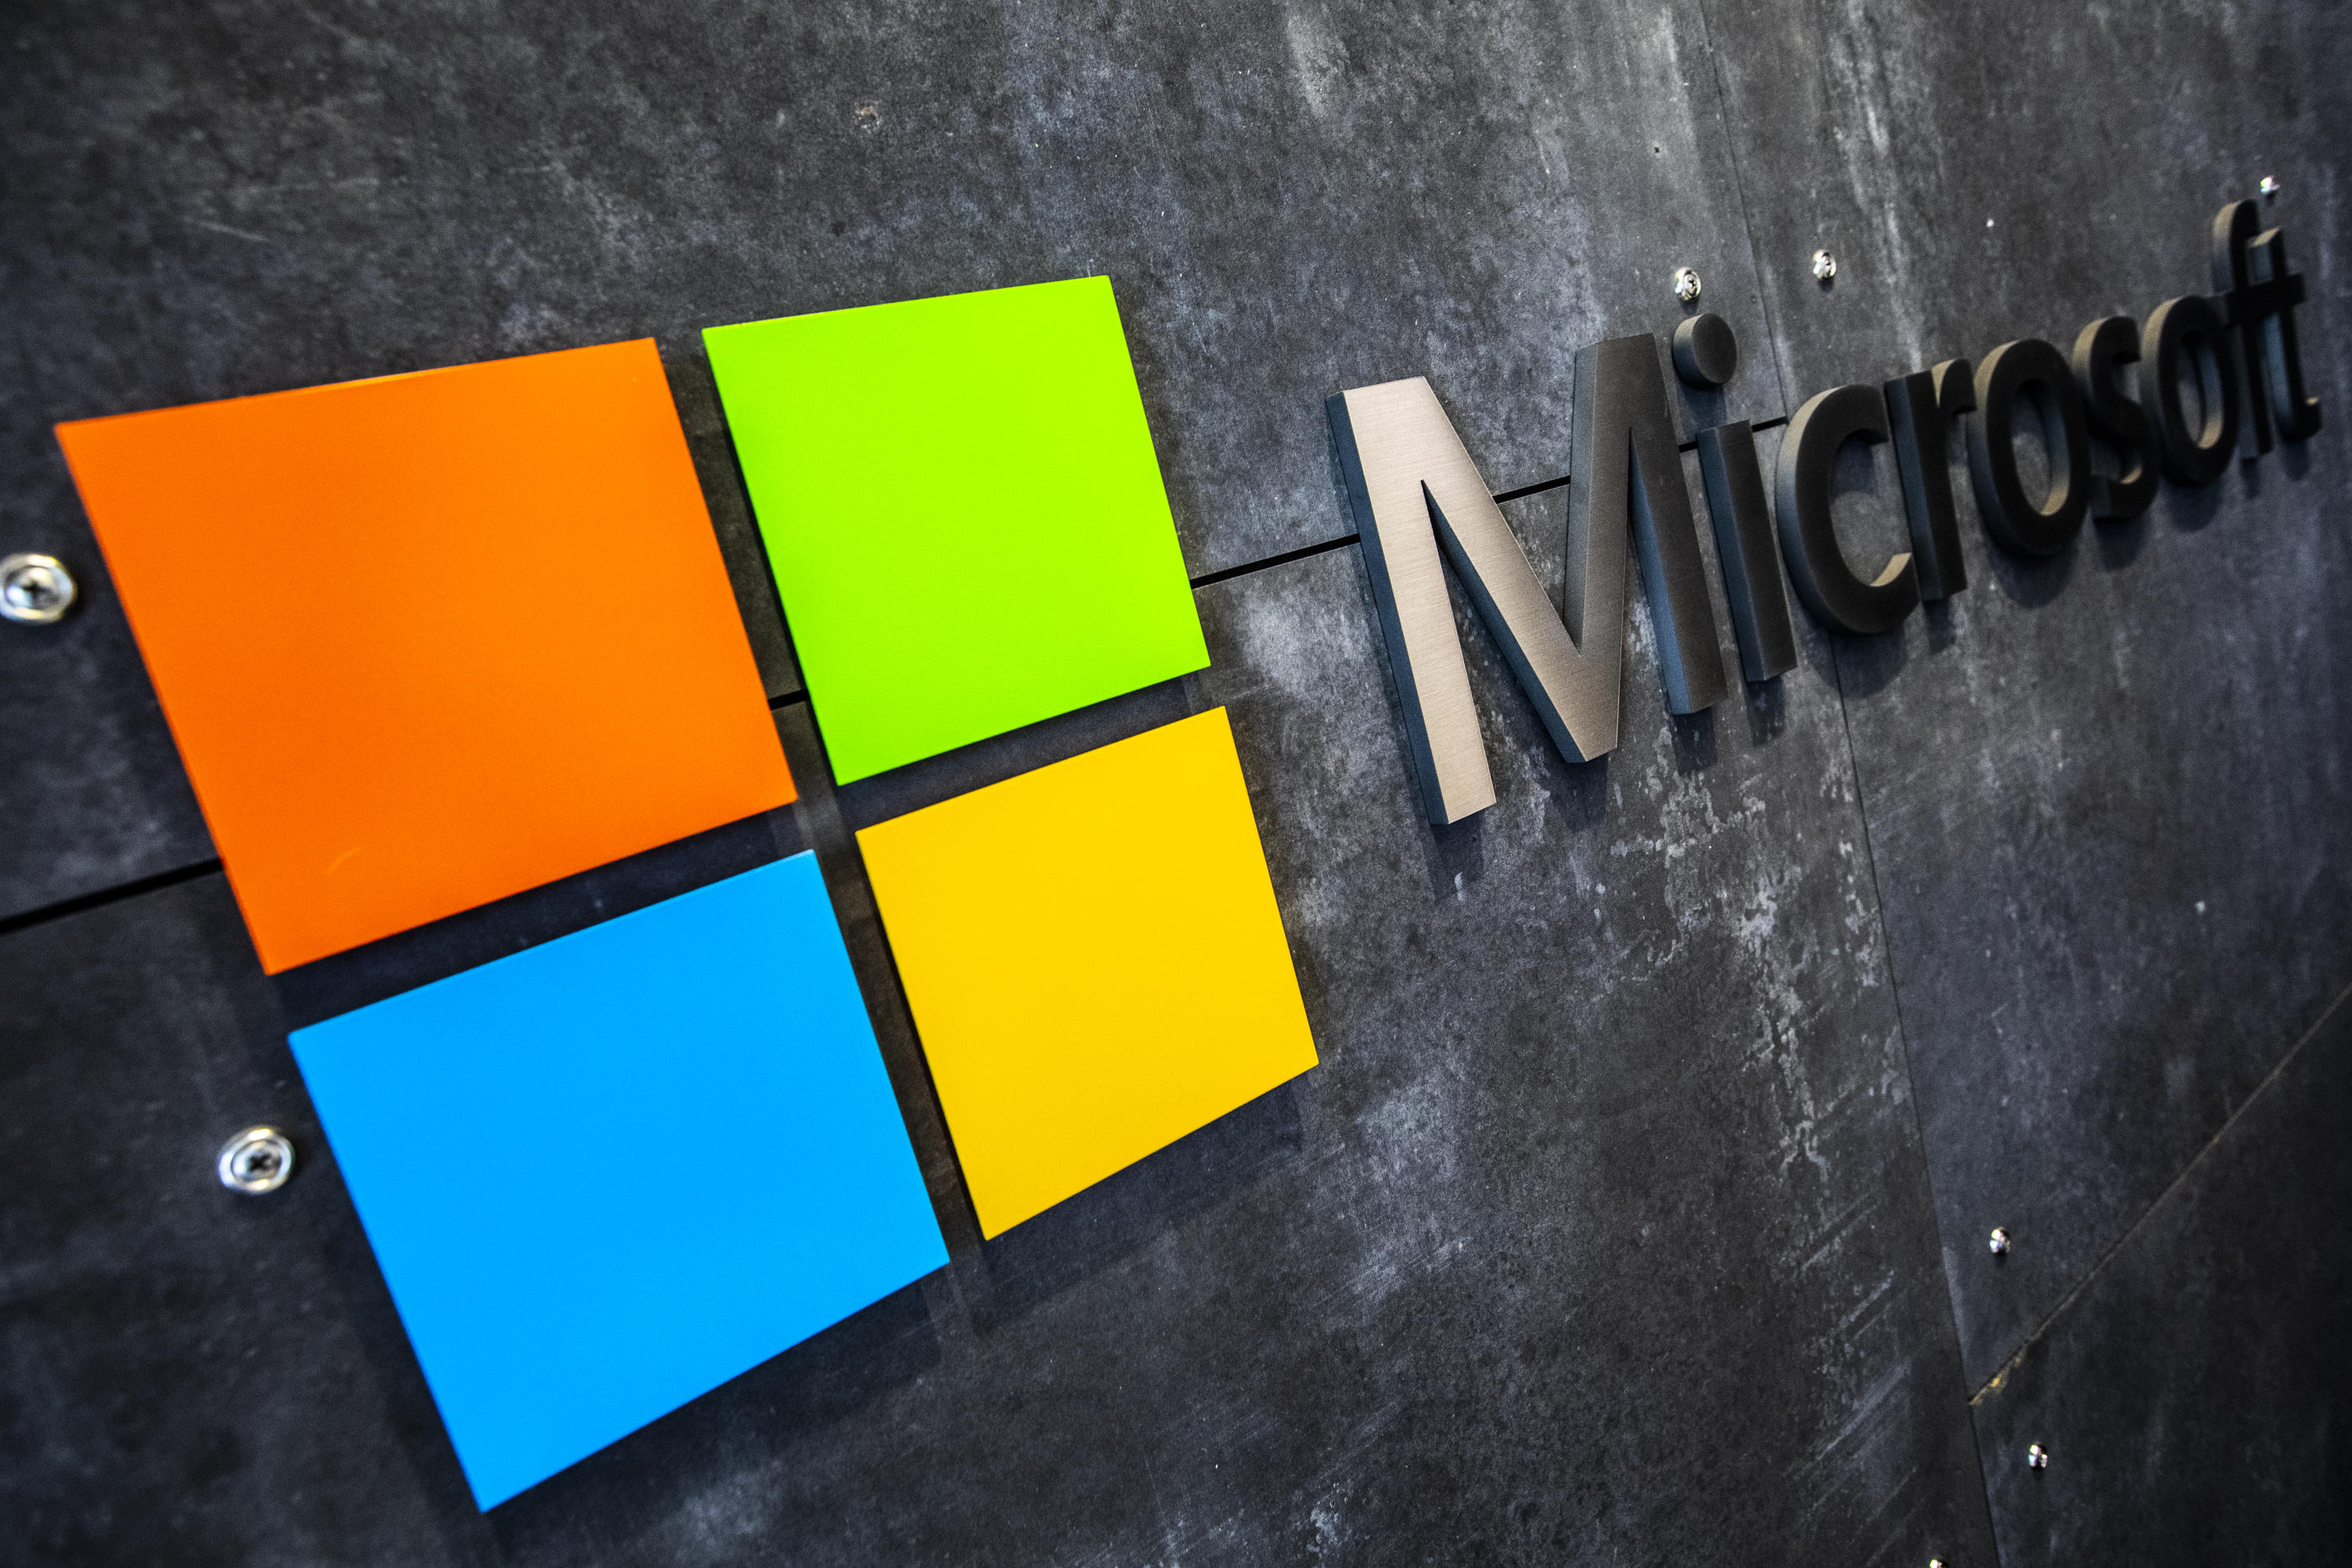 , Microsoft reportedly in talks to buy AI company Nuance Communications – Source CNET Tech, iBSC Technologies - learning management services, LMS, Wordpress, CMS, Moodle, IT, Email, Web Hosting, Cloud Server,Cloud Computing